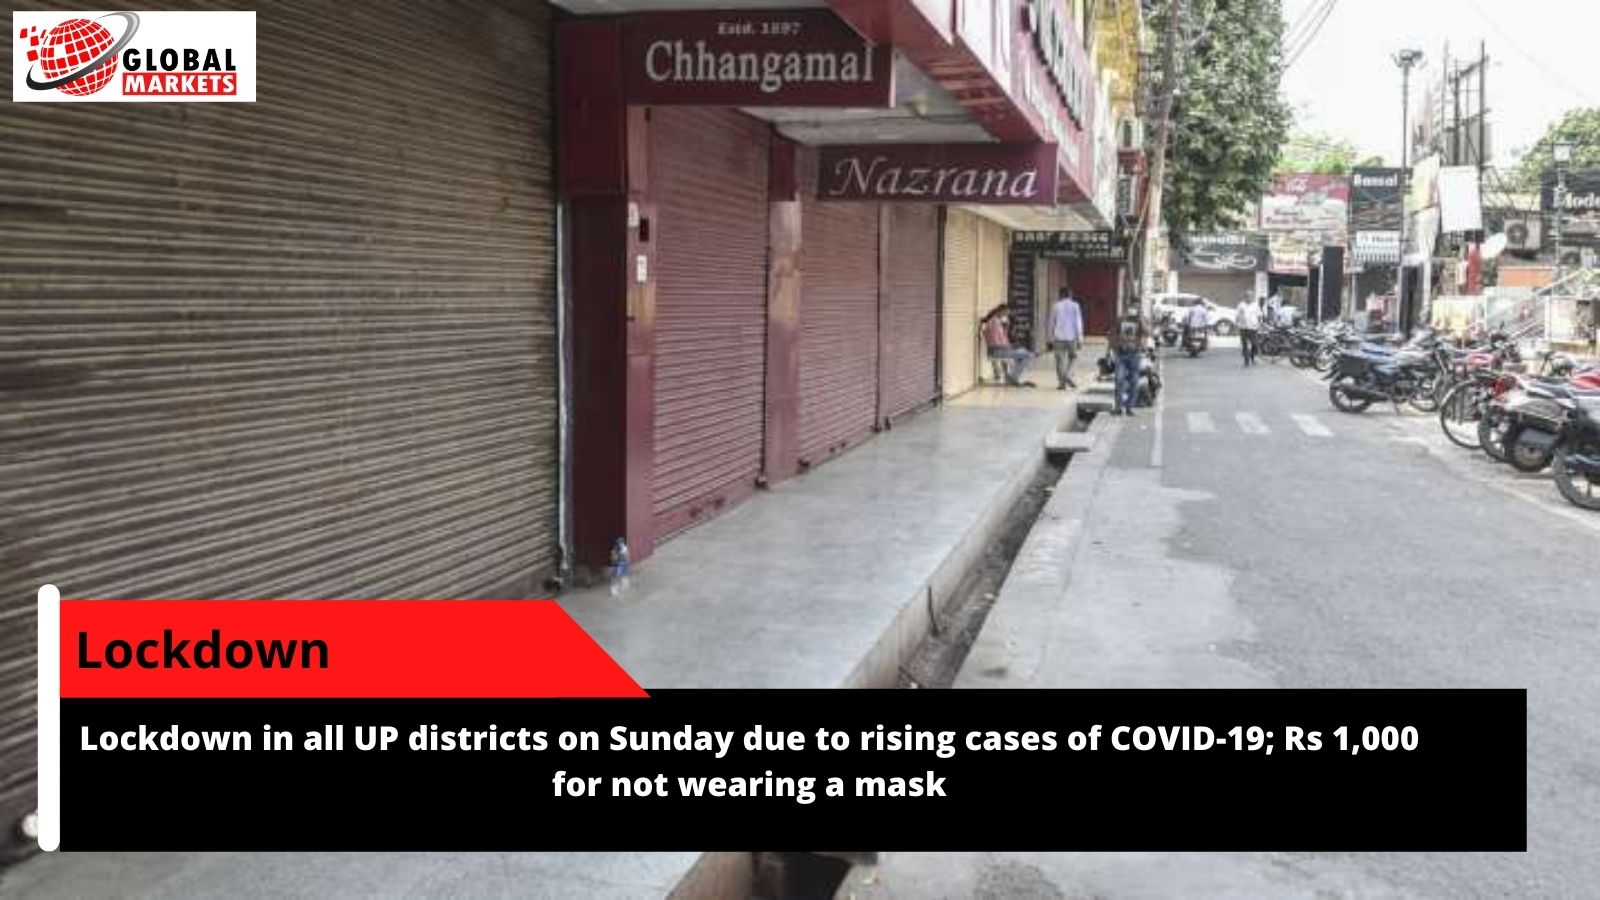 Lockdown in all UP districts on Sunday due to rising cases of COVID-19; Rs 1,000 for not wearing a mask